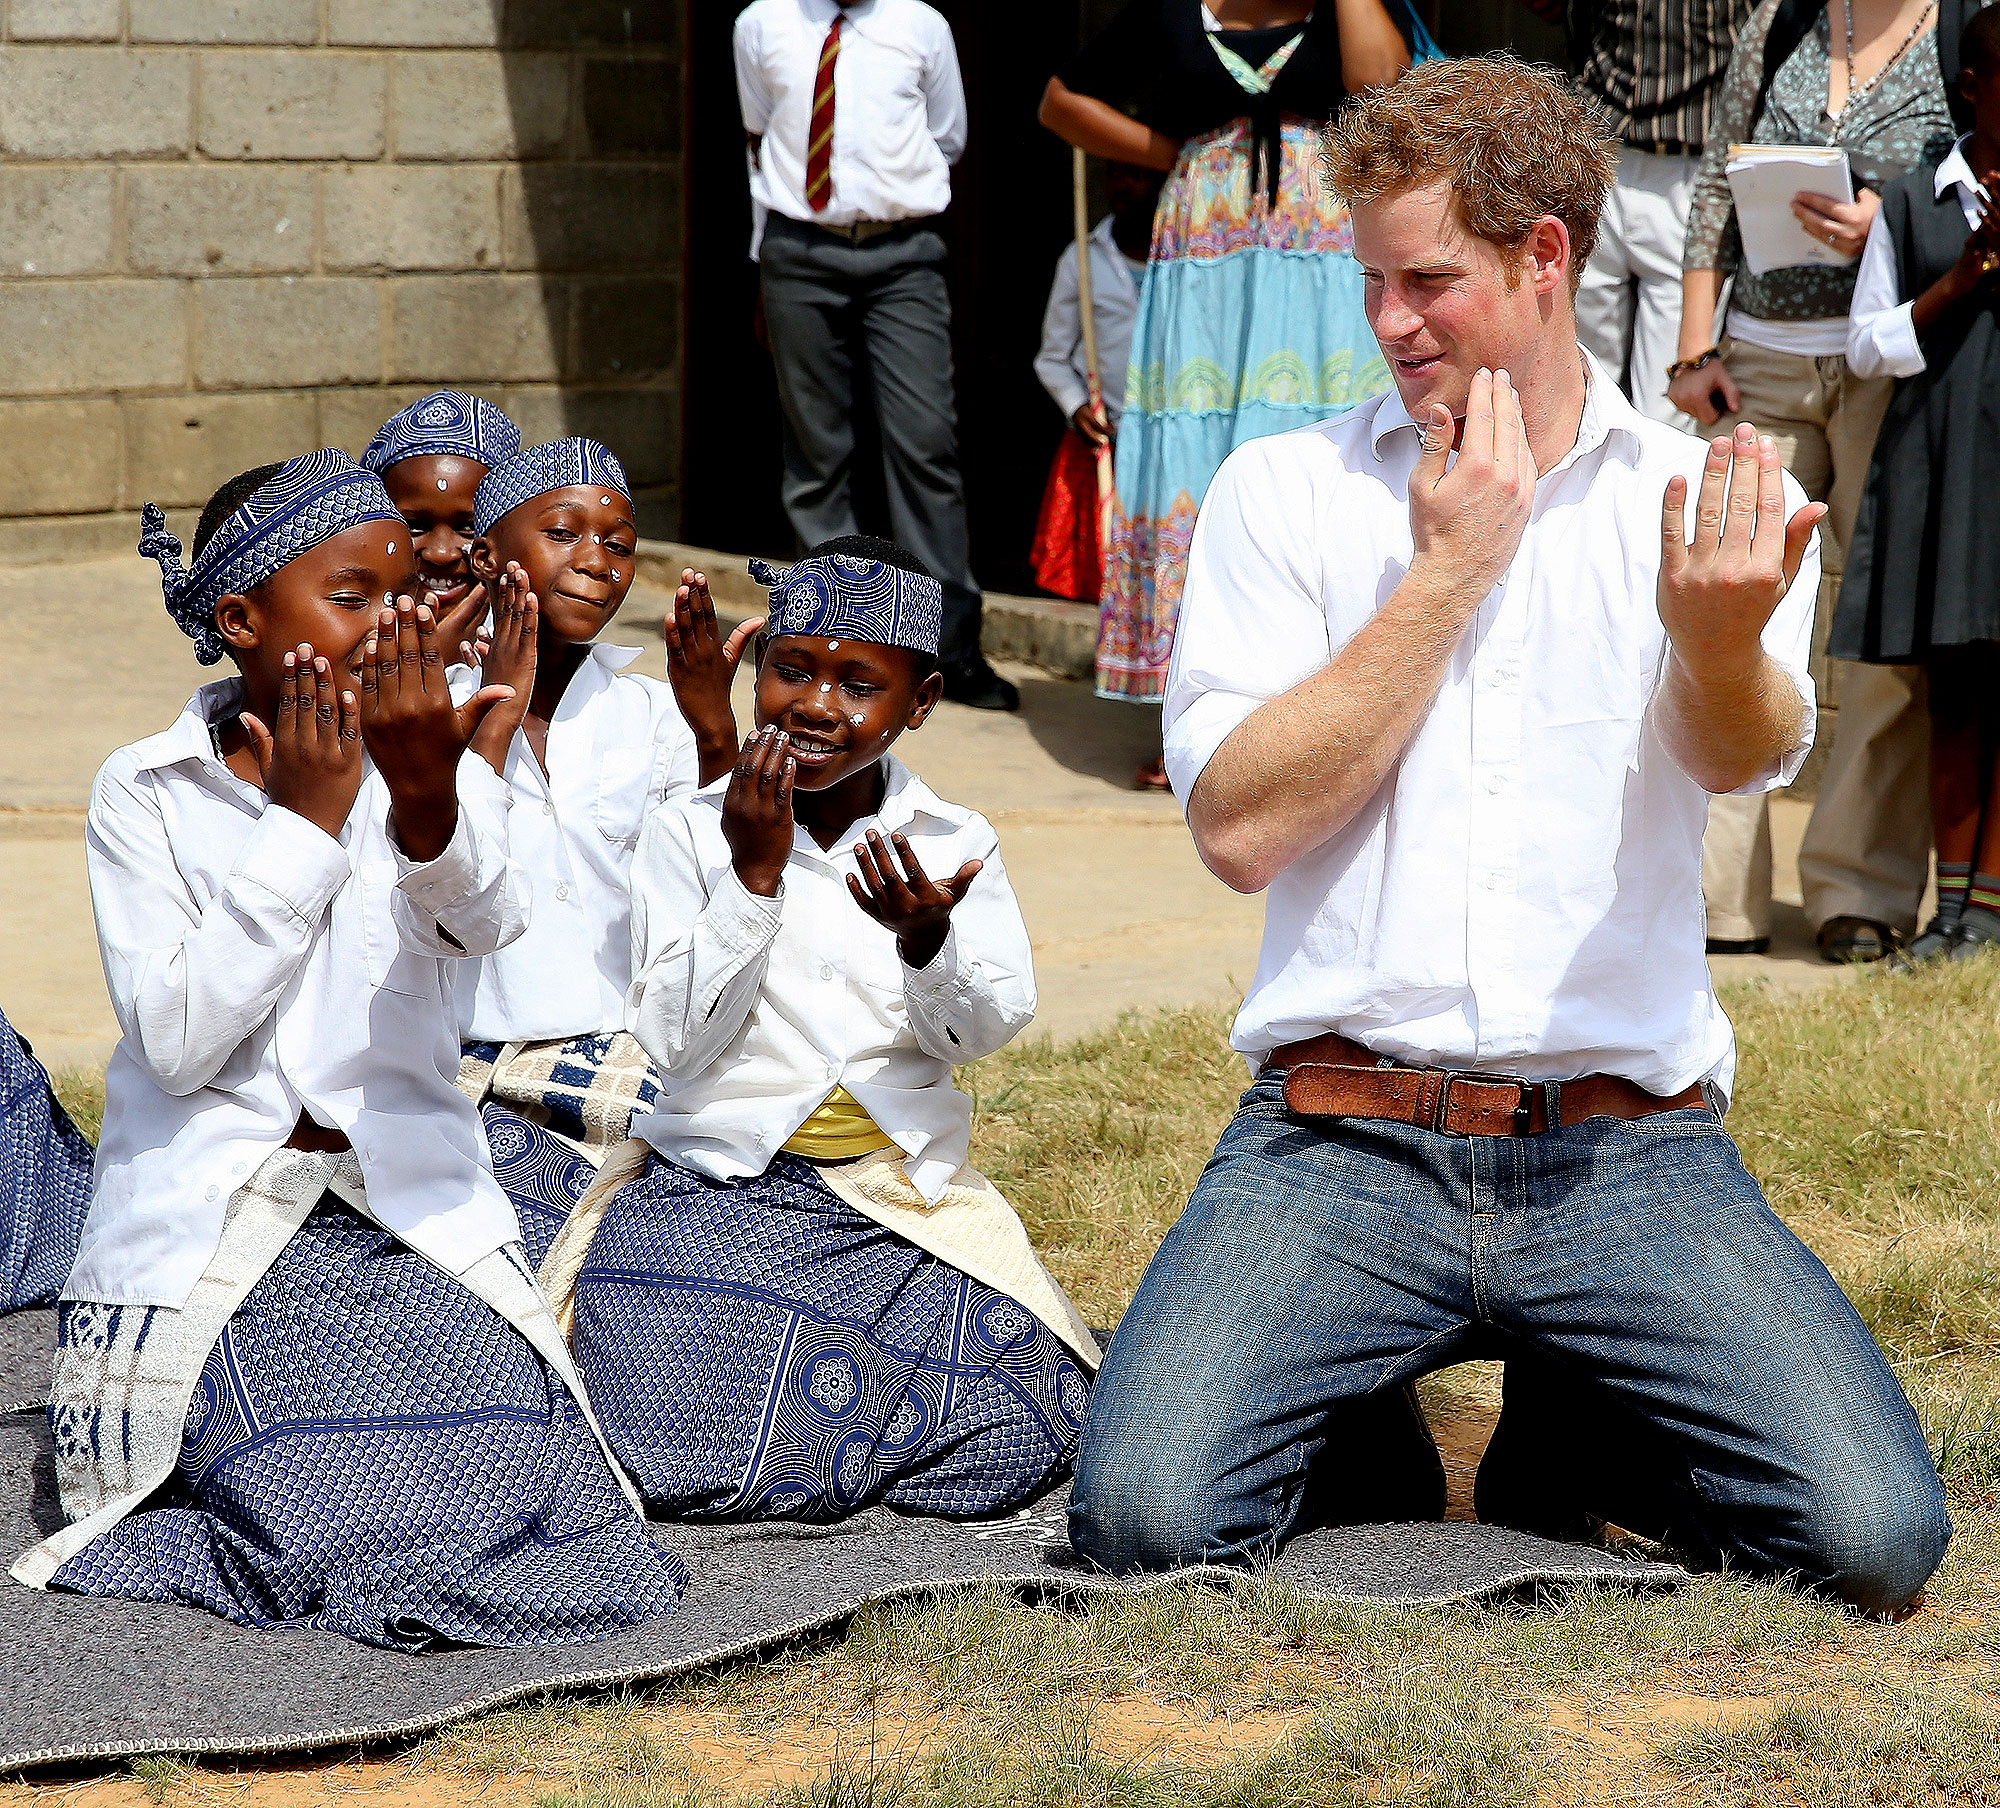 Prince Harry - Prince Harry (in Lesotho in February 2013) danced with deaf girls at the Kananelo Centre, a project supported by Sentebale.